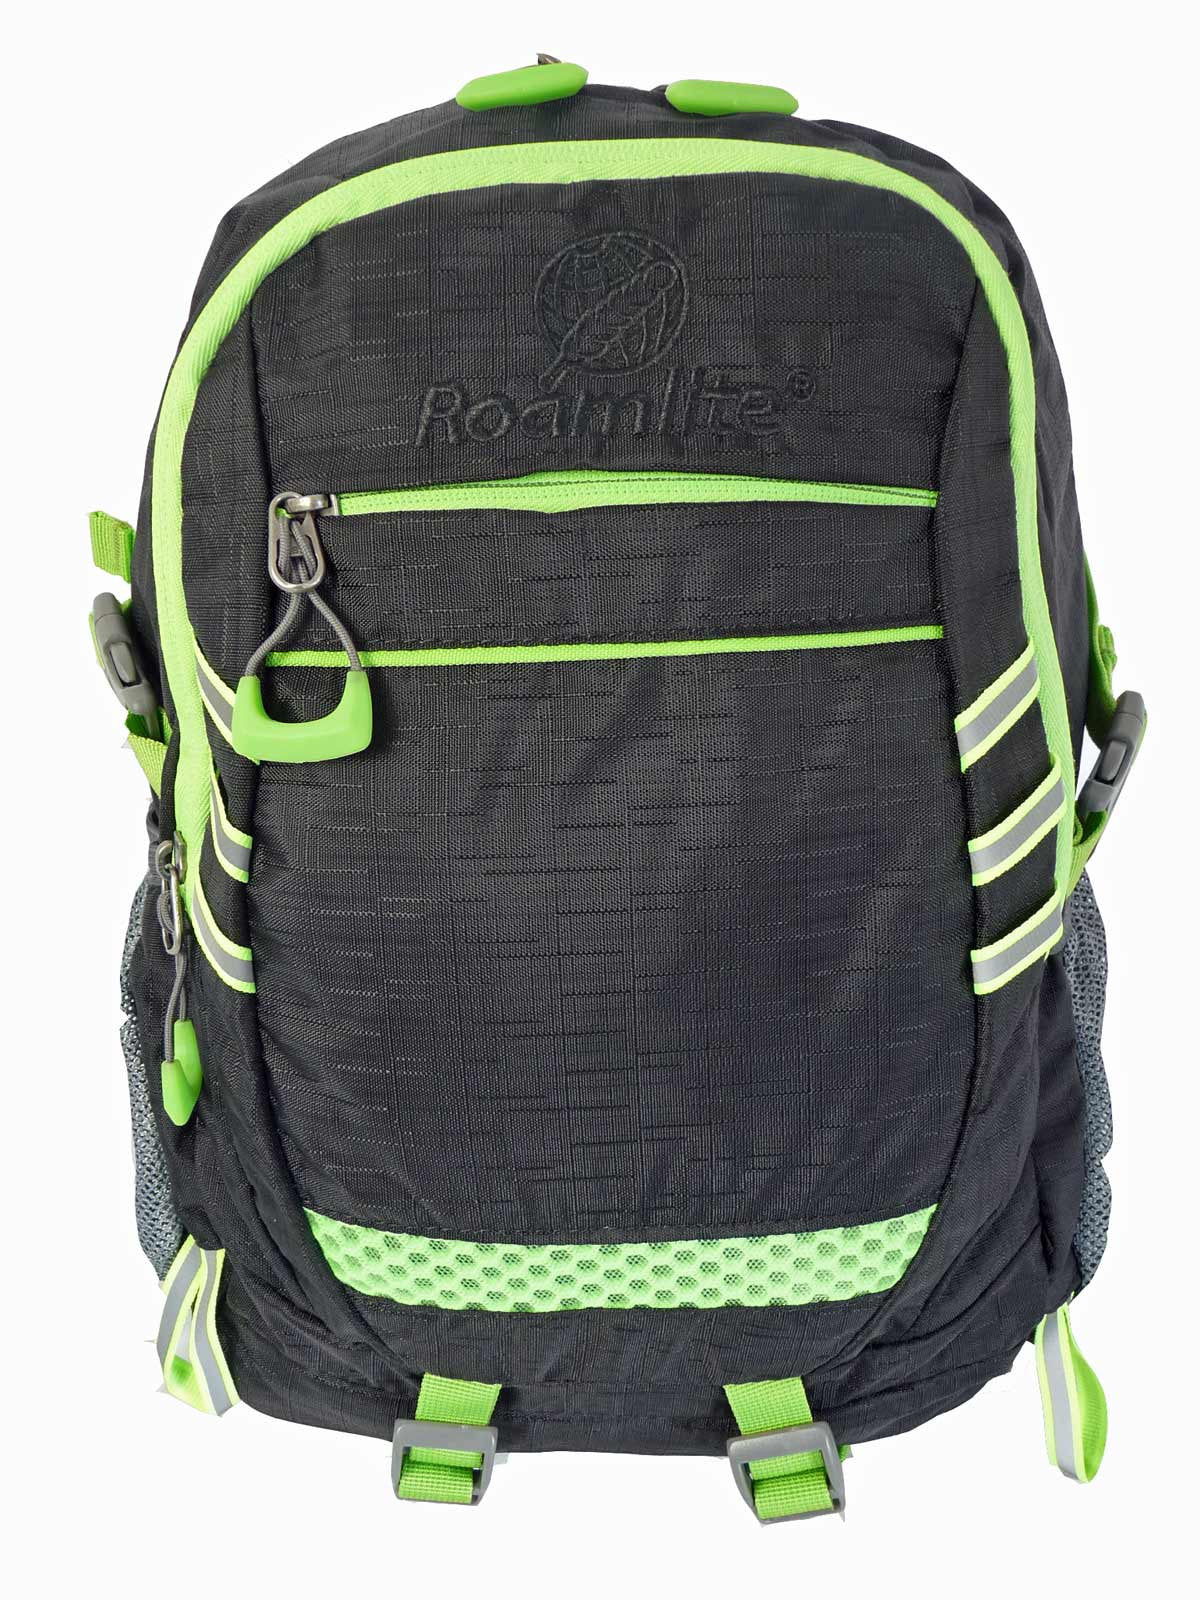 Hi High Viz Vis Backpack RL47K Black Front View